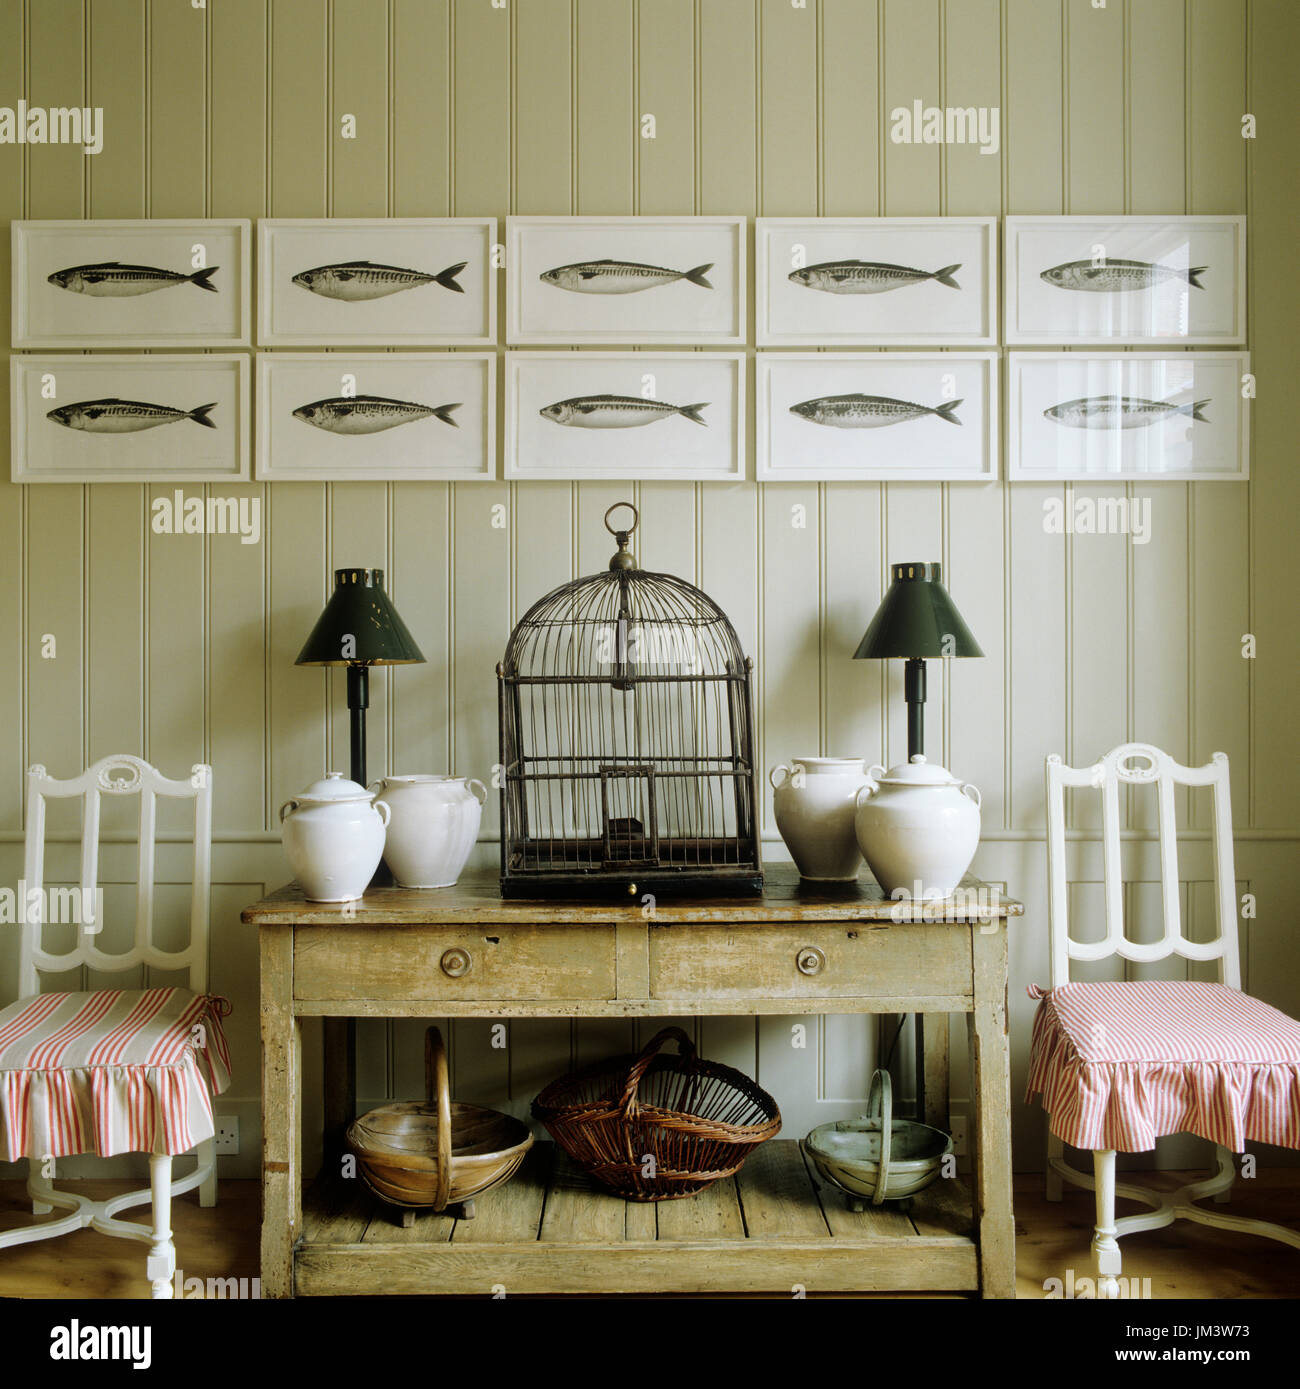 Rustic country style interior design - Stock Image